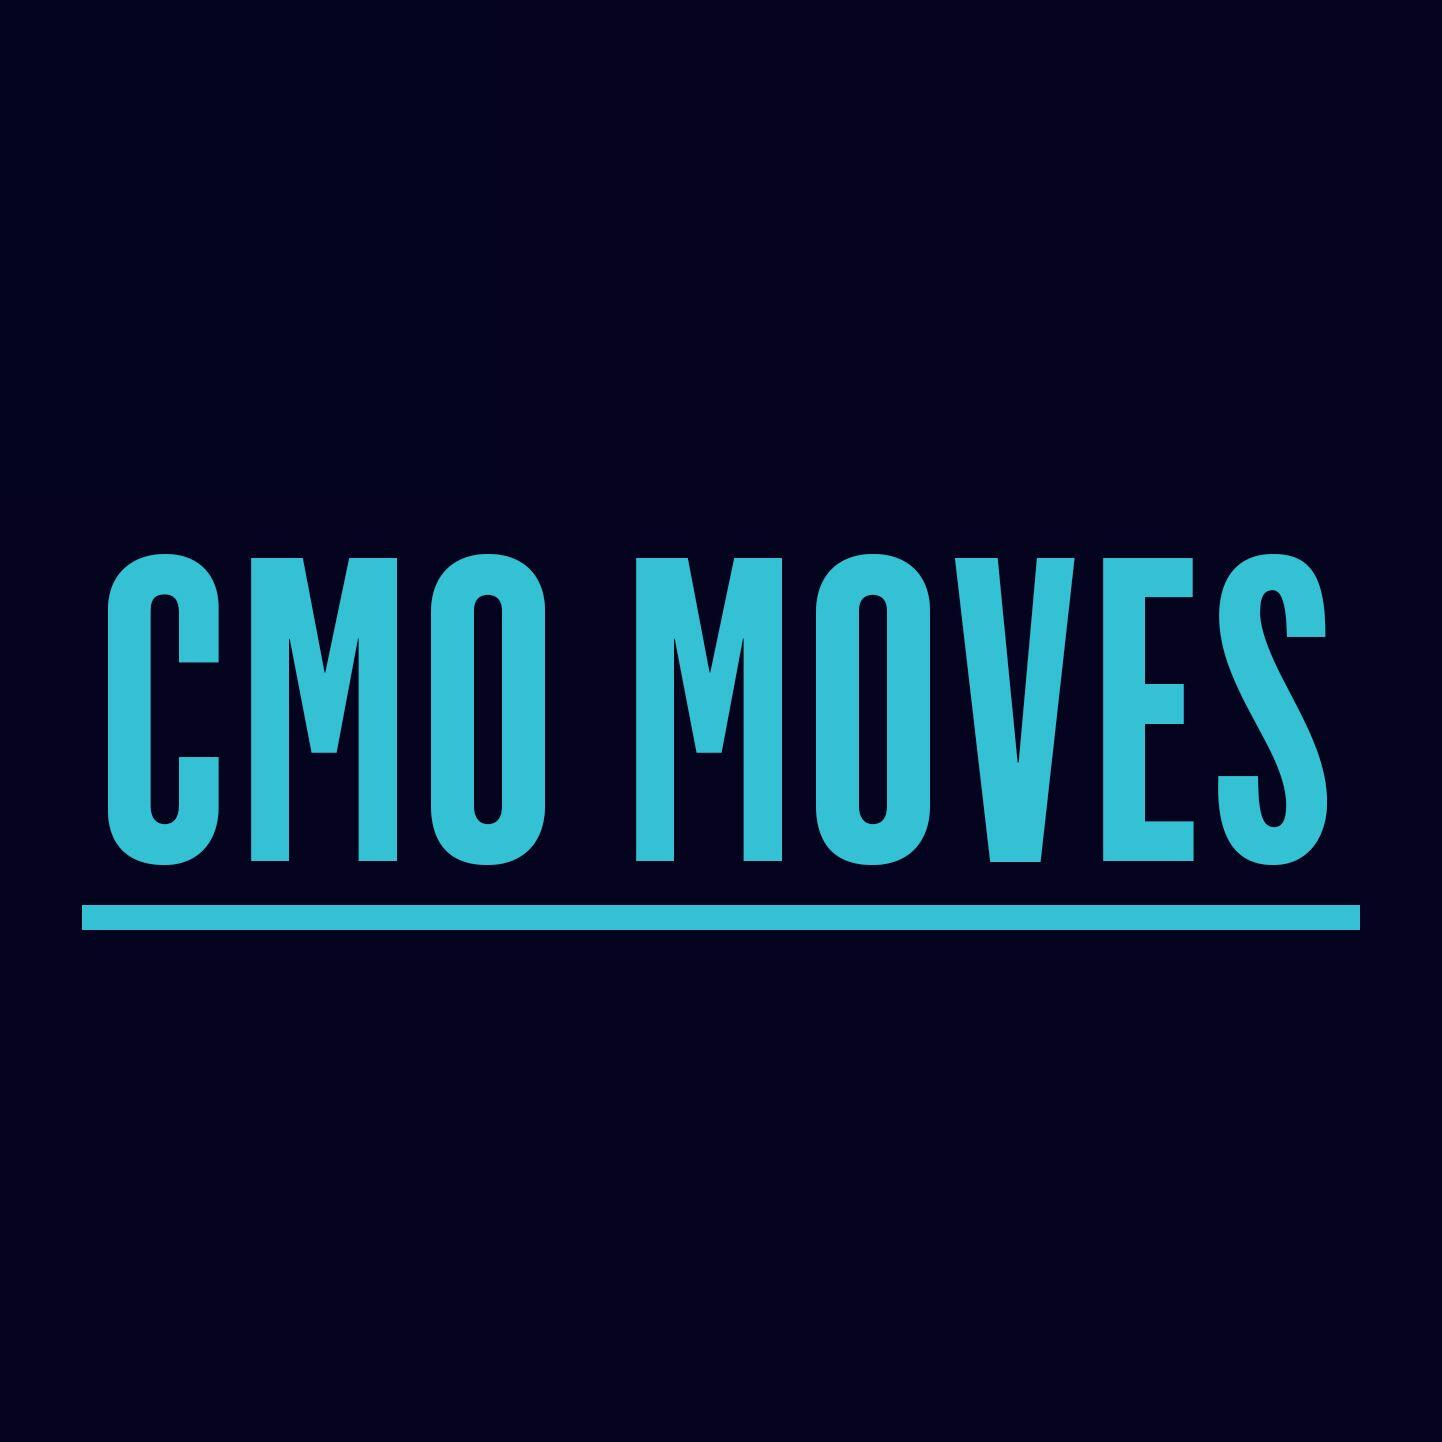 Listen to the CMO Moves Episode - The Road to 100: Highlights, Confessions and Peek Behind the Mic on iHeartRadio | iHeartRadio